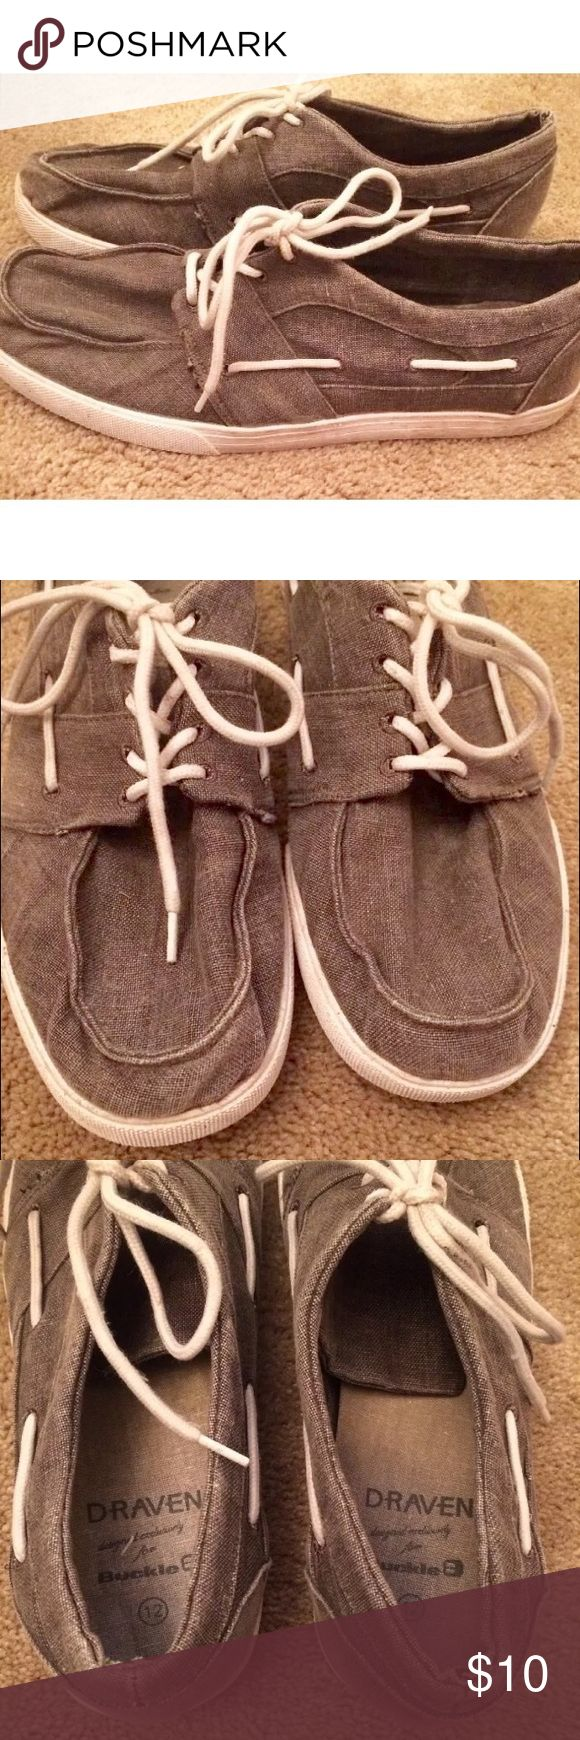 Men's Boat Shoes Size 12 Draven for Buckle EUC men's shoes by Draven designed exclusively for Buckle. Gray denim color. Size 12. No flaws. Soles just a little dirty. Buckle Shoes Sneakers